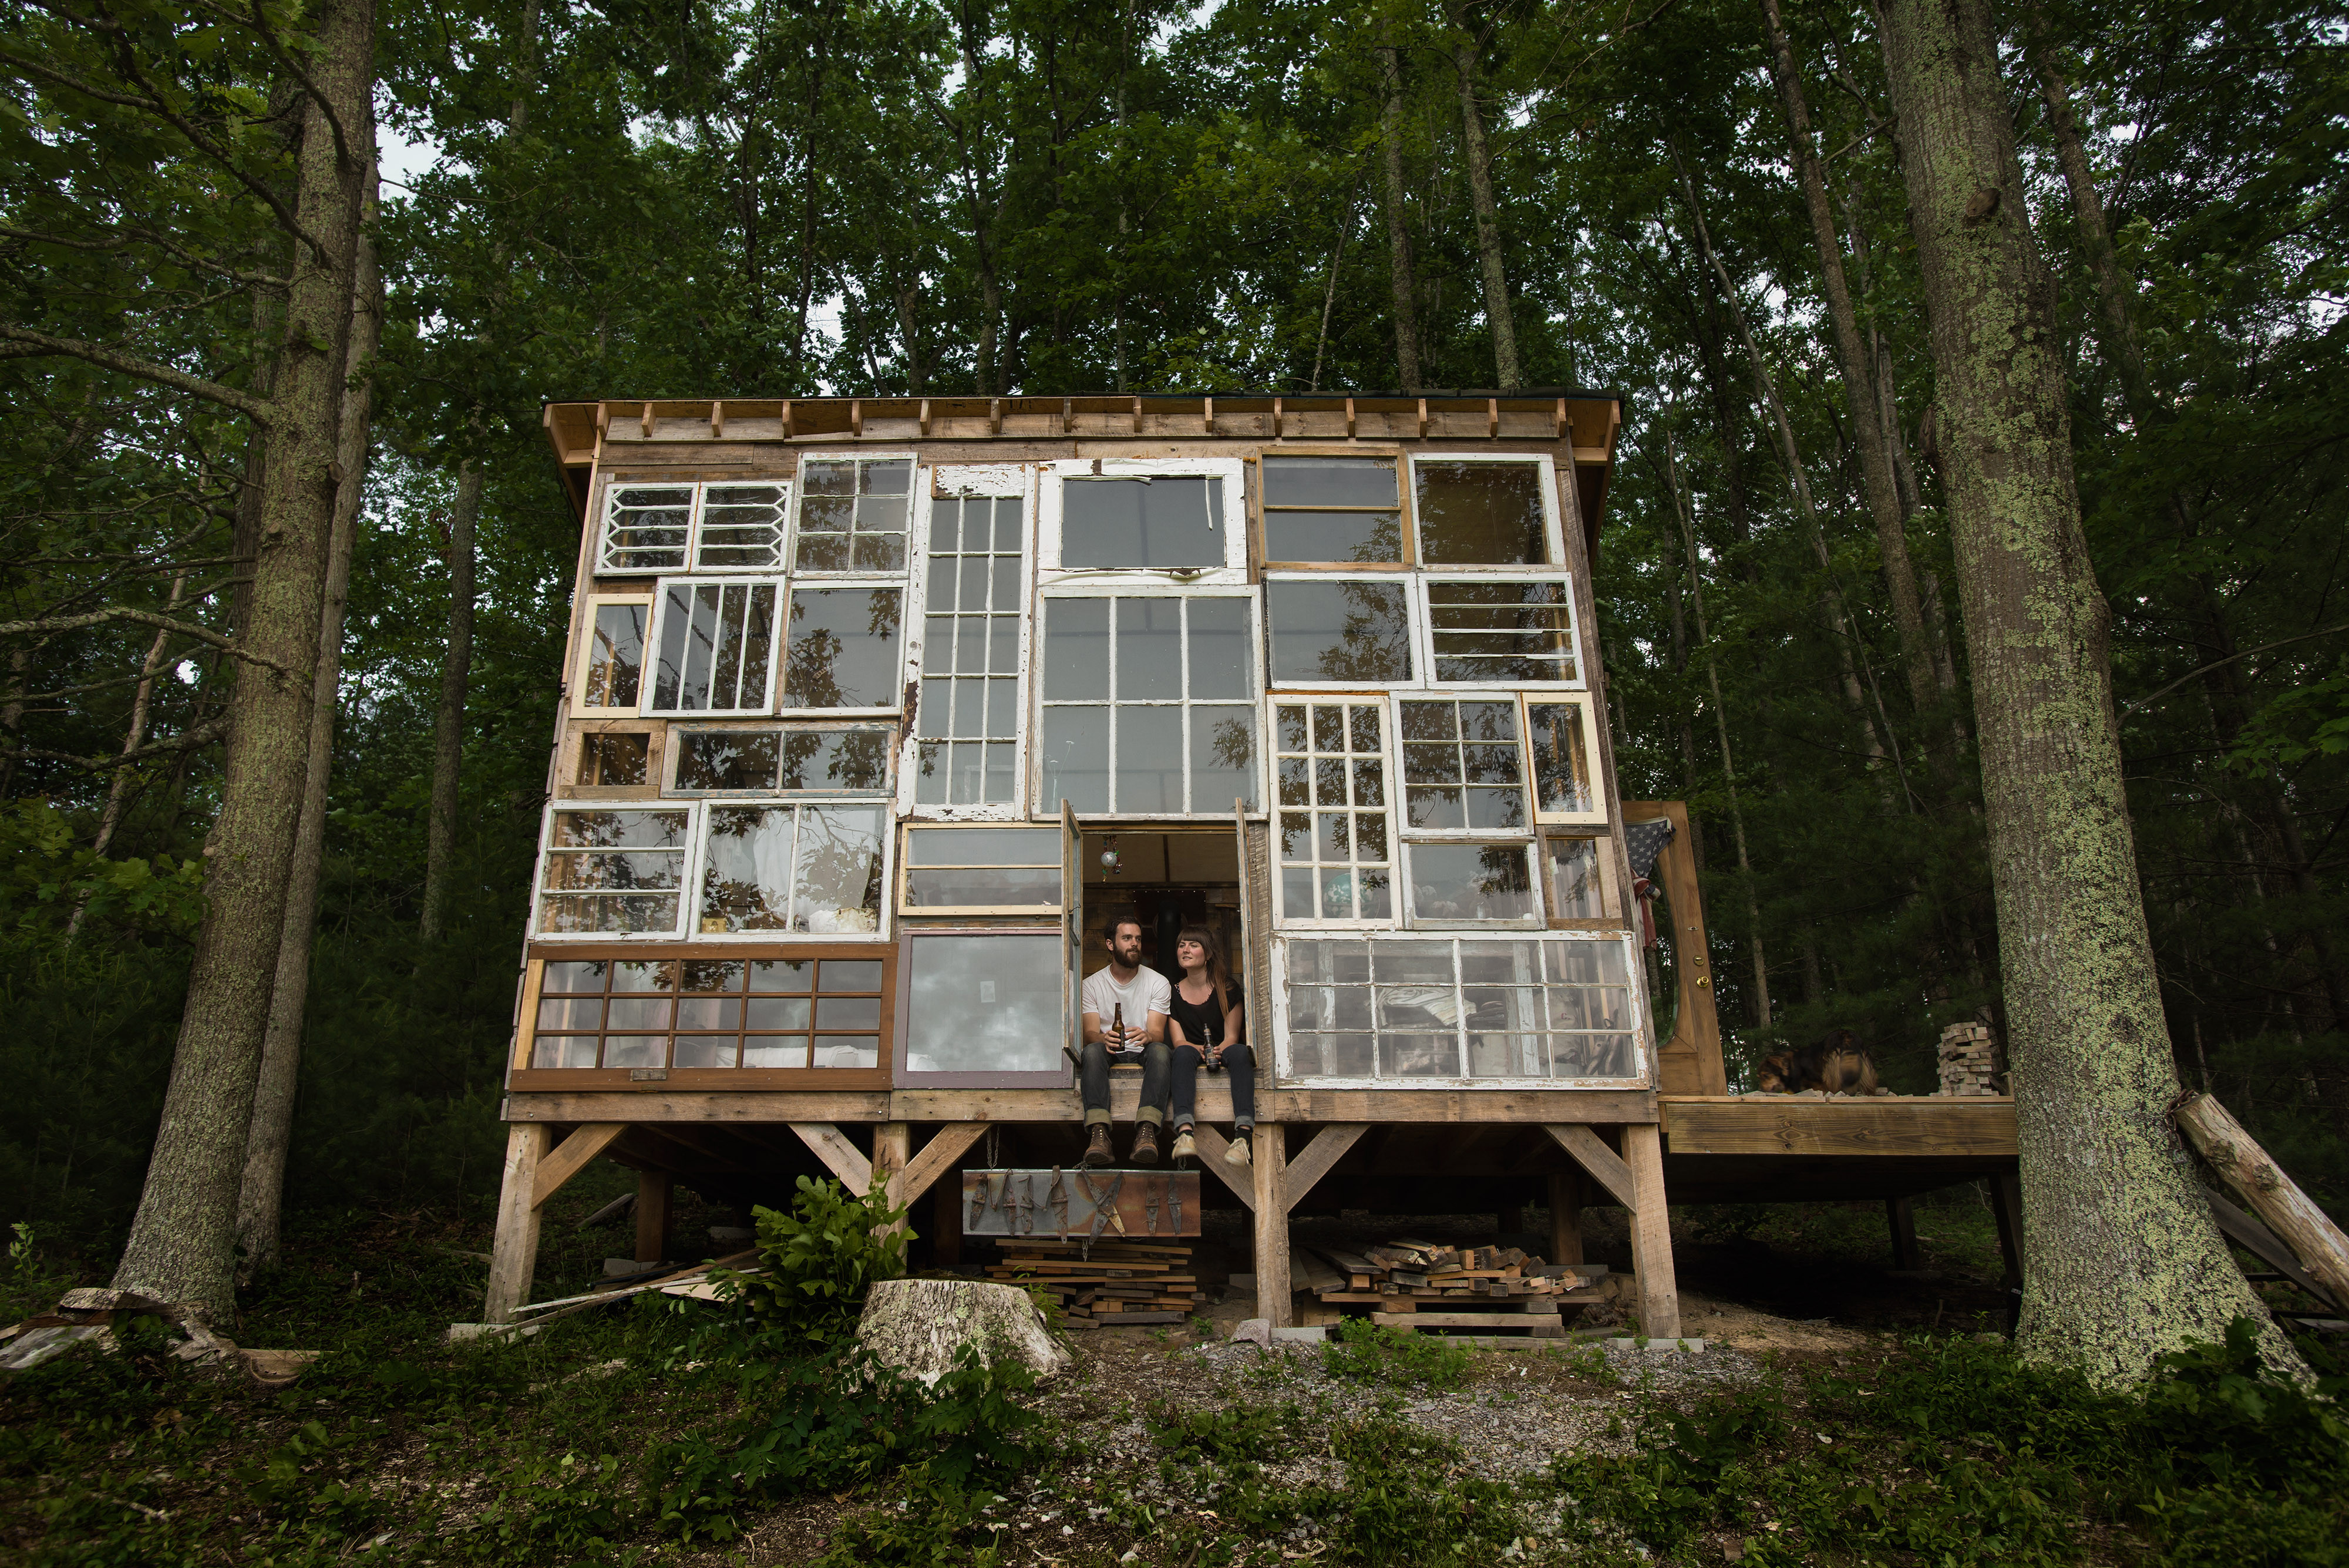 Cozy Mountain Cabin Built From Repurposed Windows Costs Just 500 To Make Photos Video Huffpost